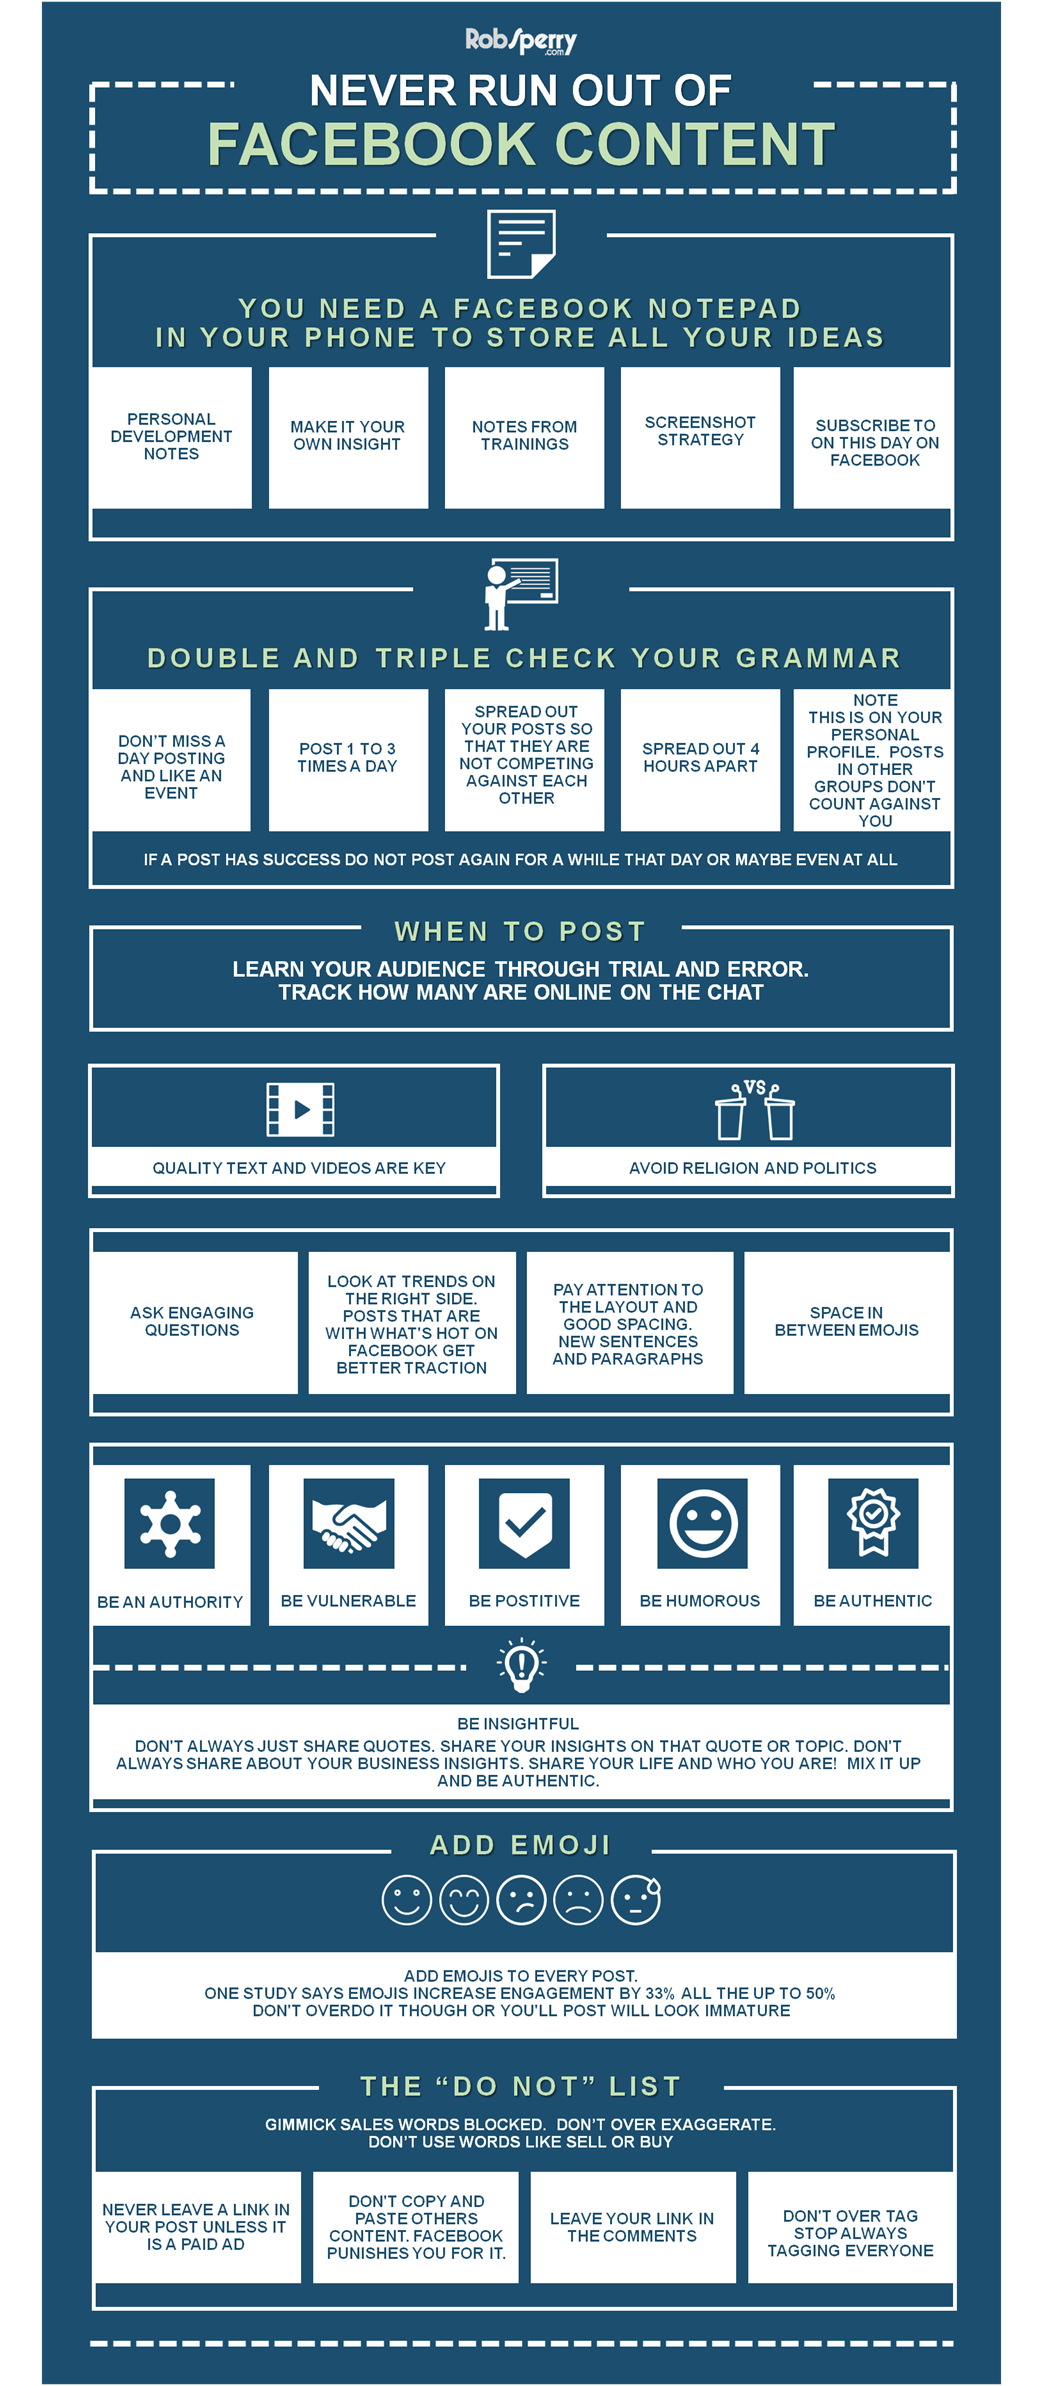 http://www.teamheart.net/wp-content/uploads/2020/02/Never-Run-Out-of-Content-Infographic.png